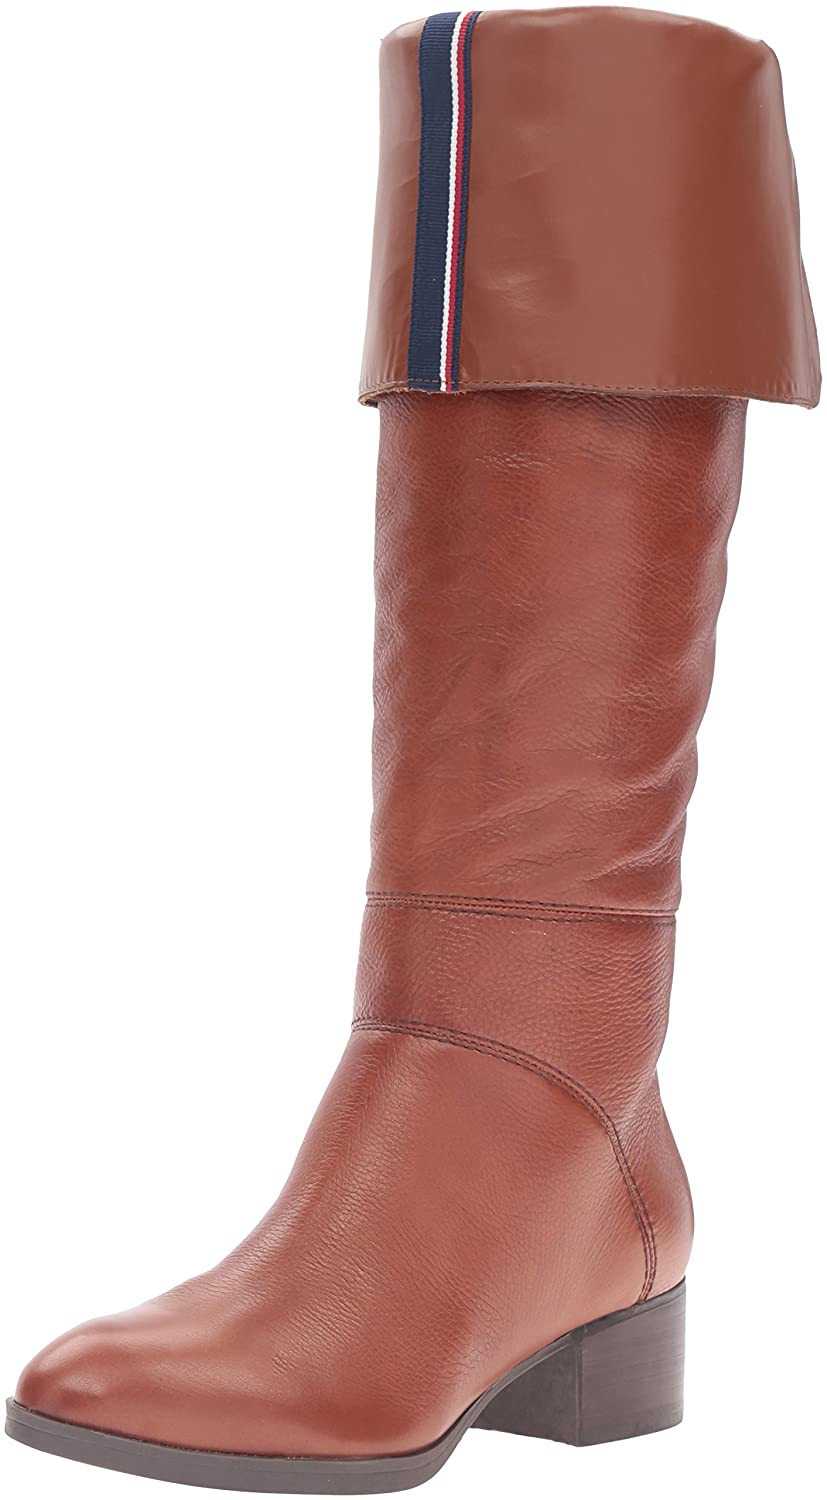 9eef03ed18c173 Tommy Hilfiger Women s Gianna Western Boot